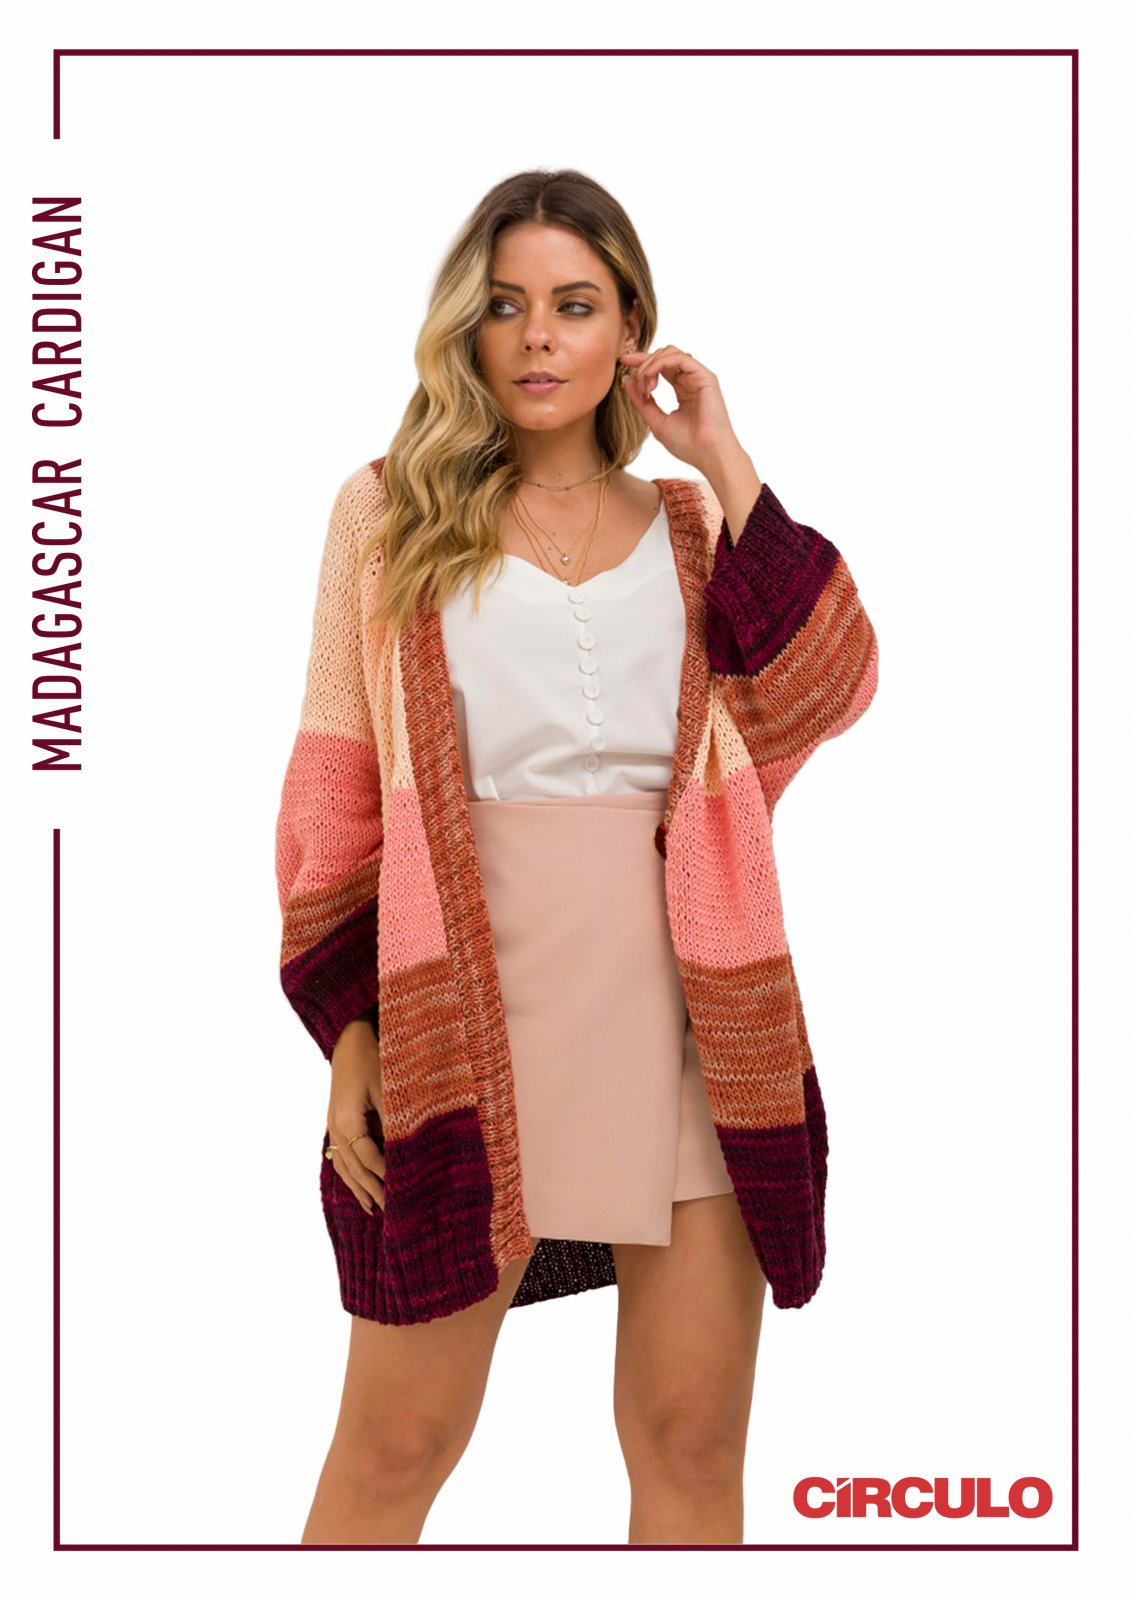 Circulo Duna Madagascar Cardigan Pattern (Digital Download)